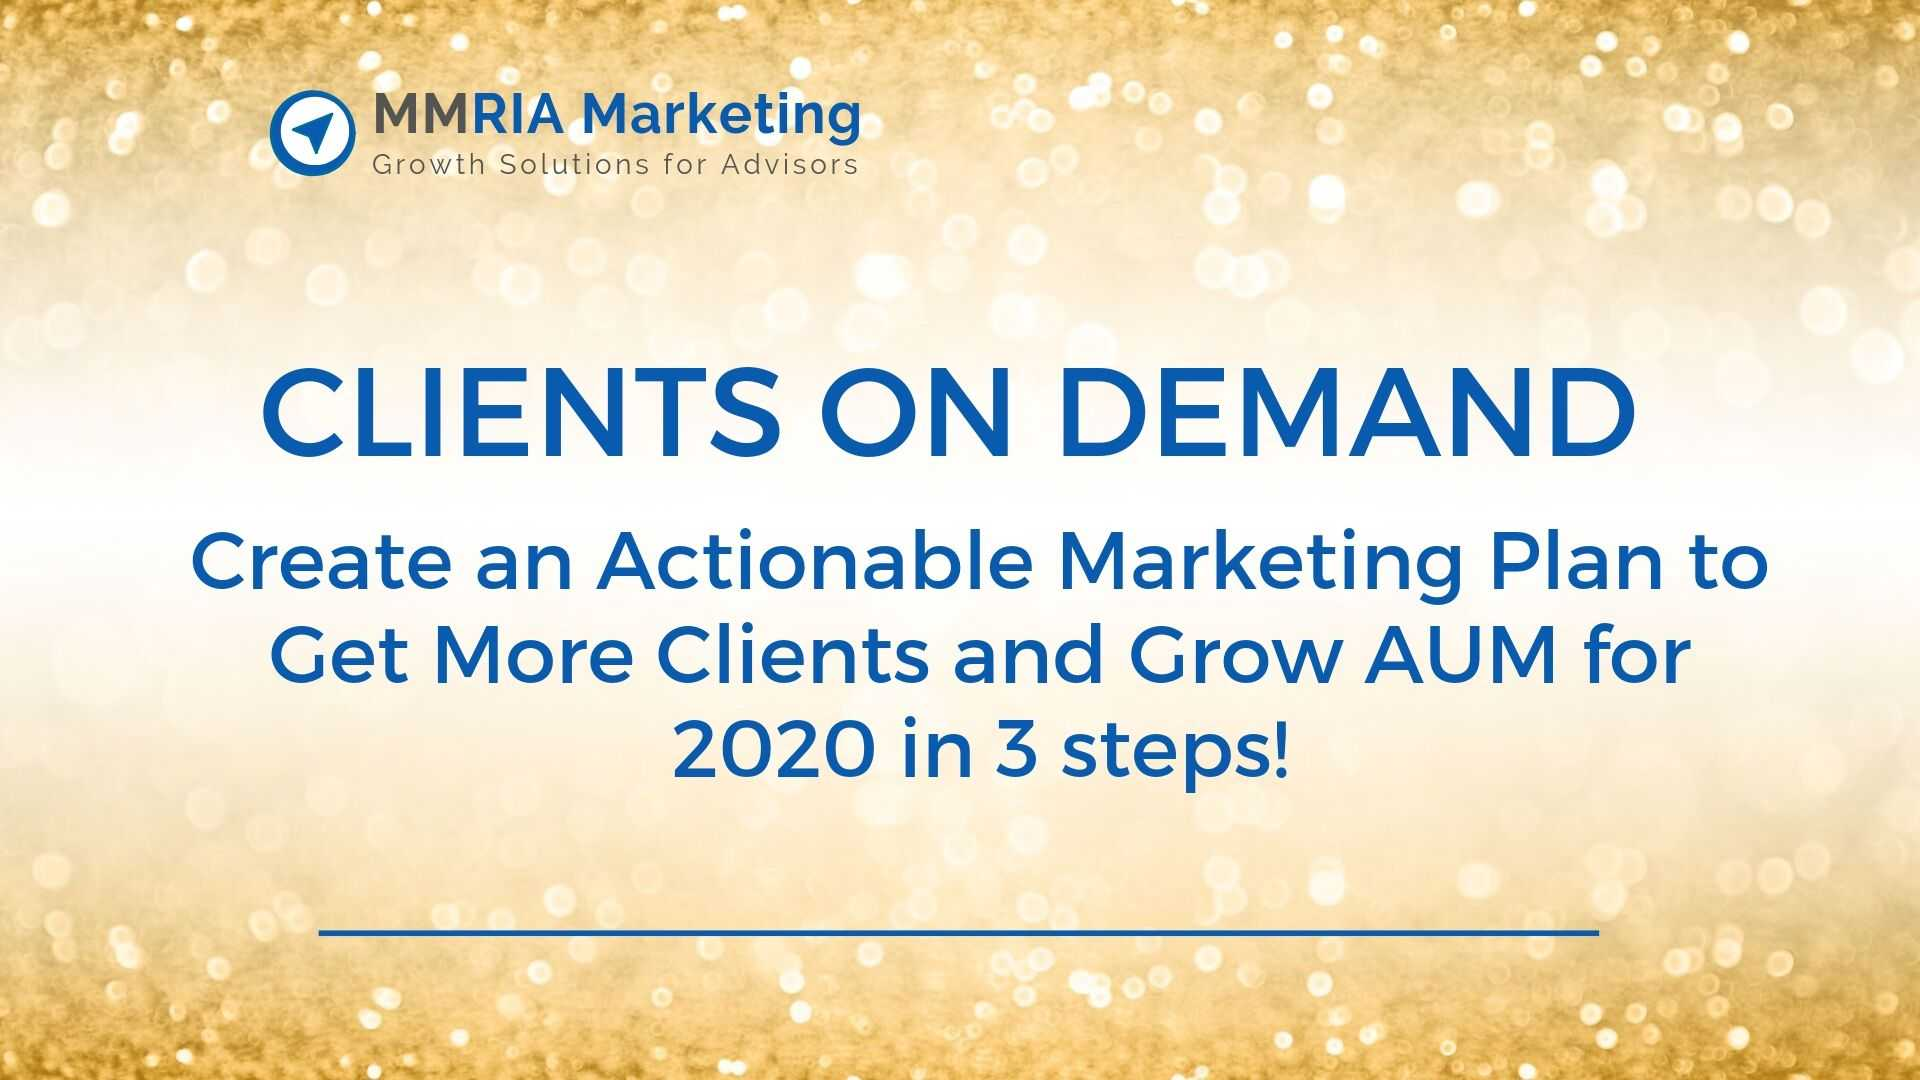 Financial Advisor Marketing Strategy Webinar Get Clients On Demand